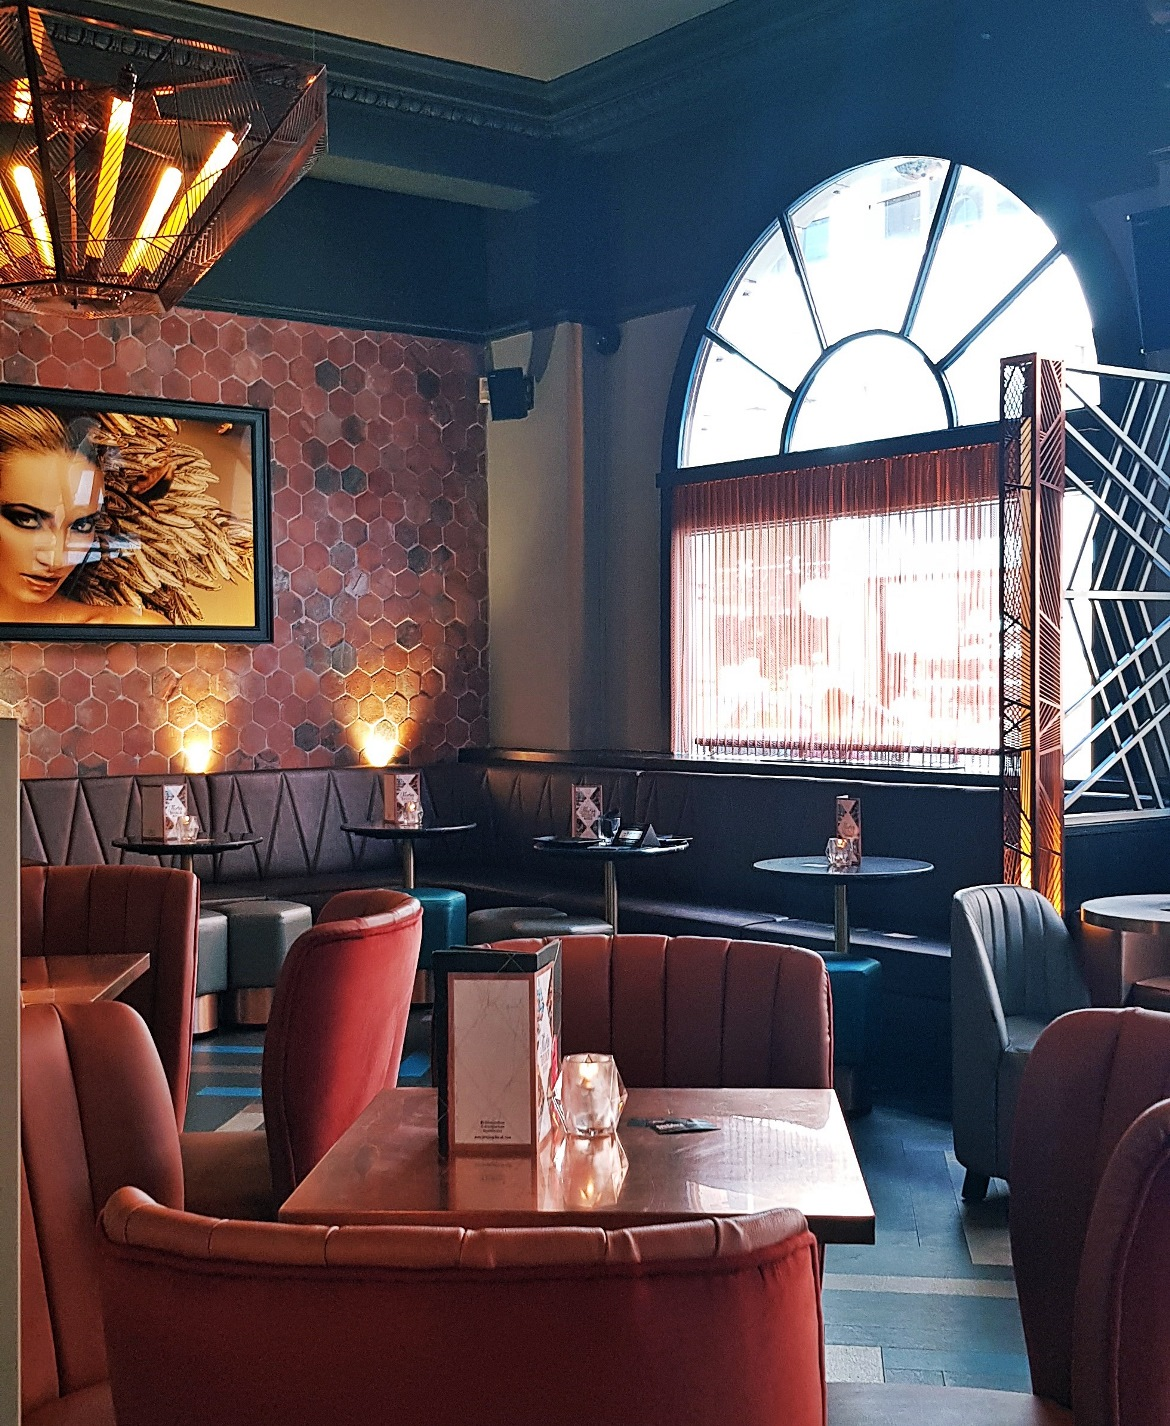 Decor - Bottomless Brunch at Dirty Martini, review by BeckyBecky Blogs